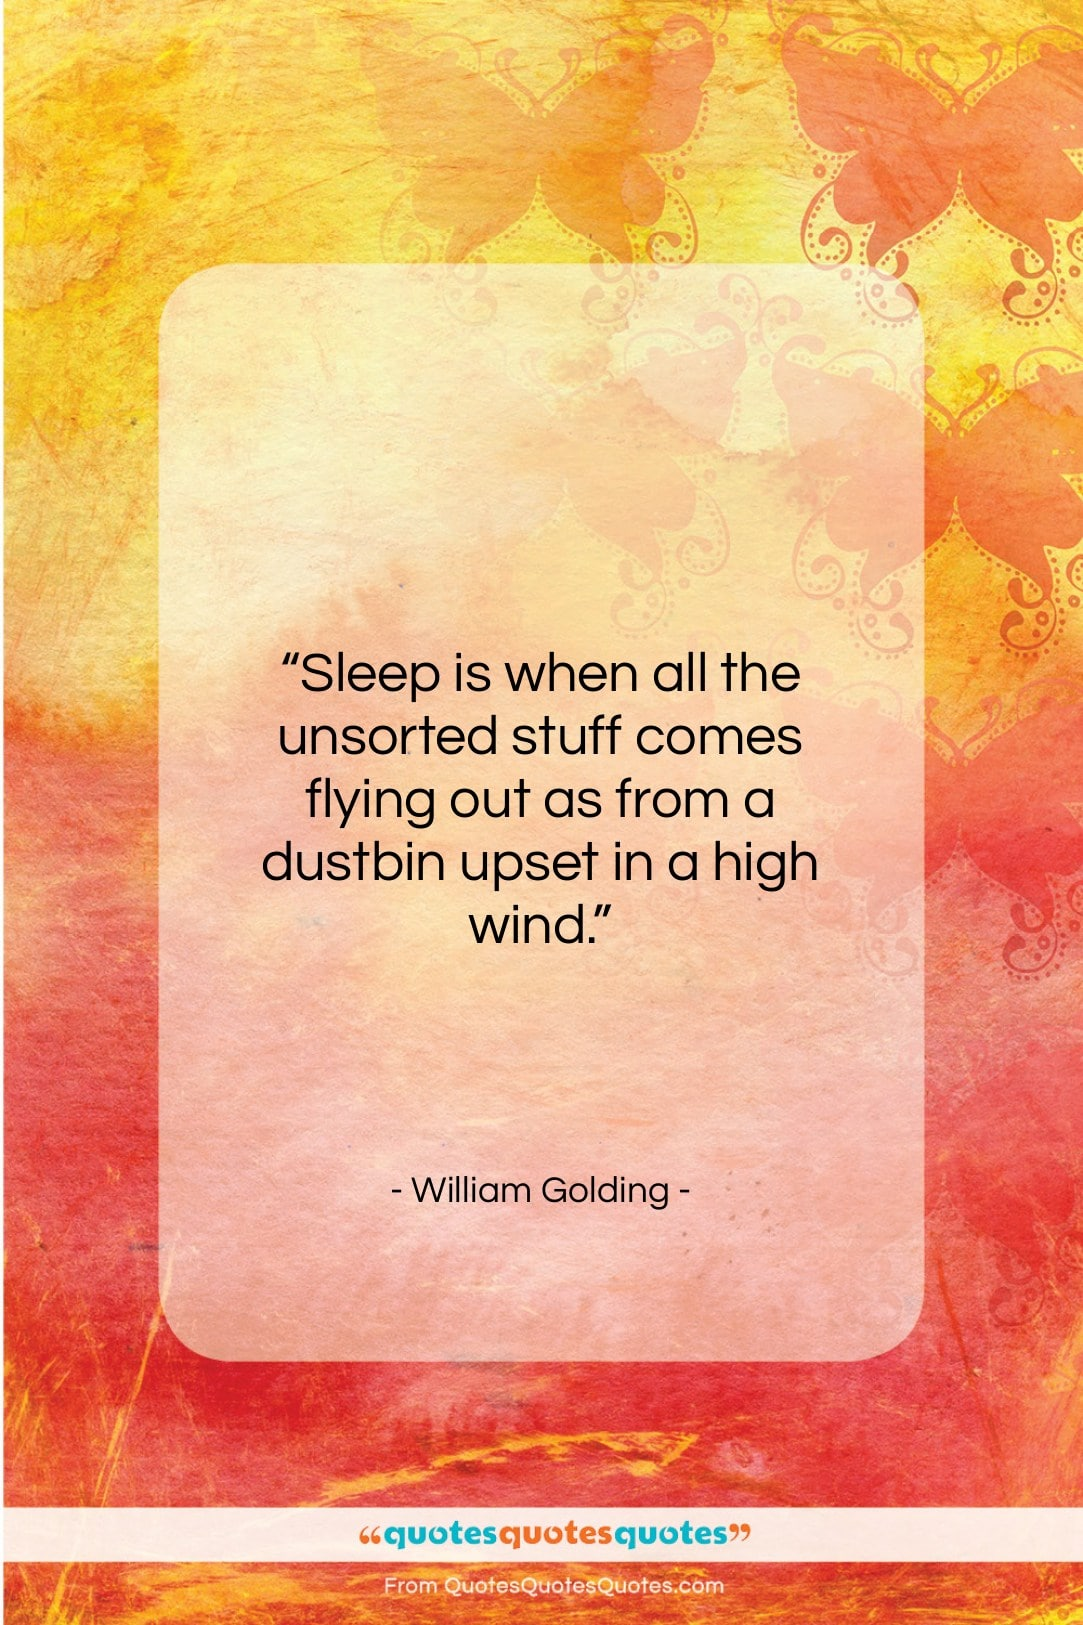 William Golding Quotes 6